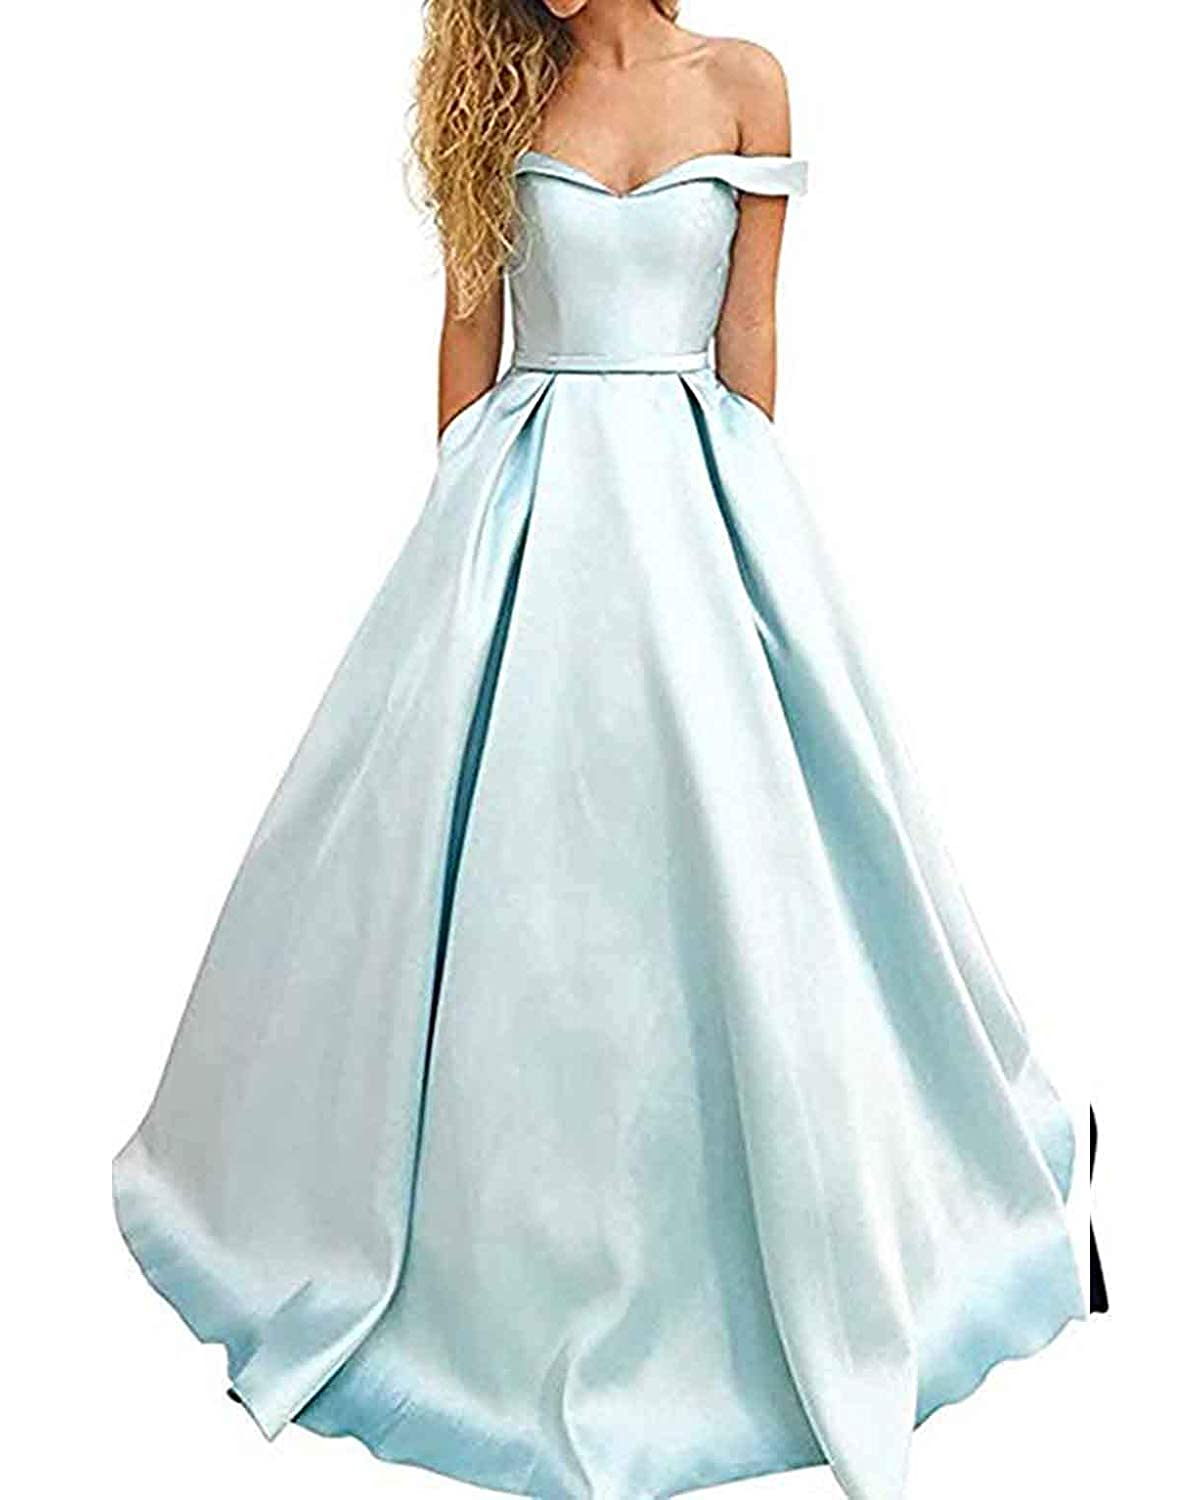 Light bluee WHLWHL OffTheShoulder Long Prom Dress Party Gowns for Women 2019 Evening with Pockets